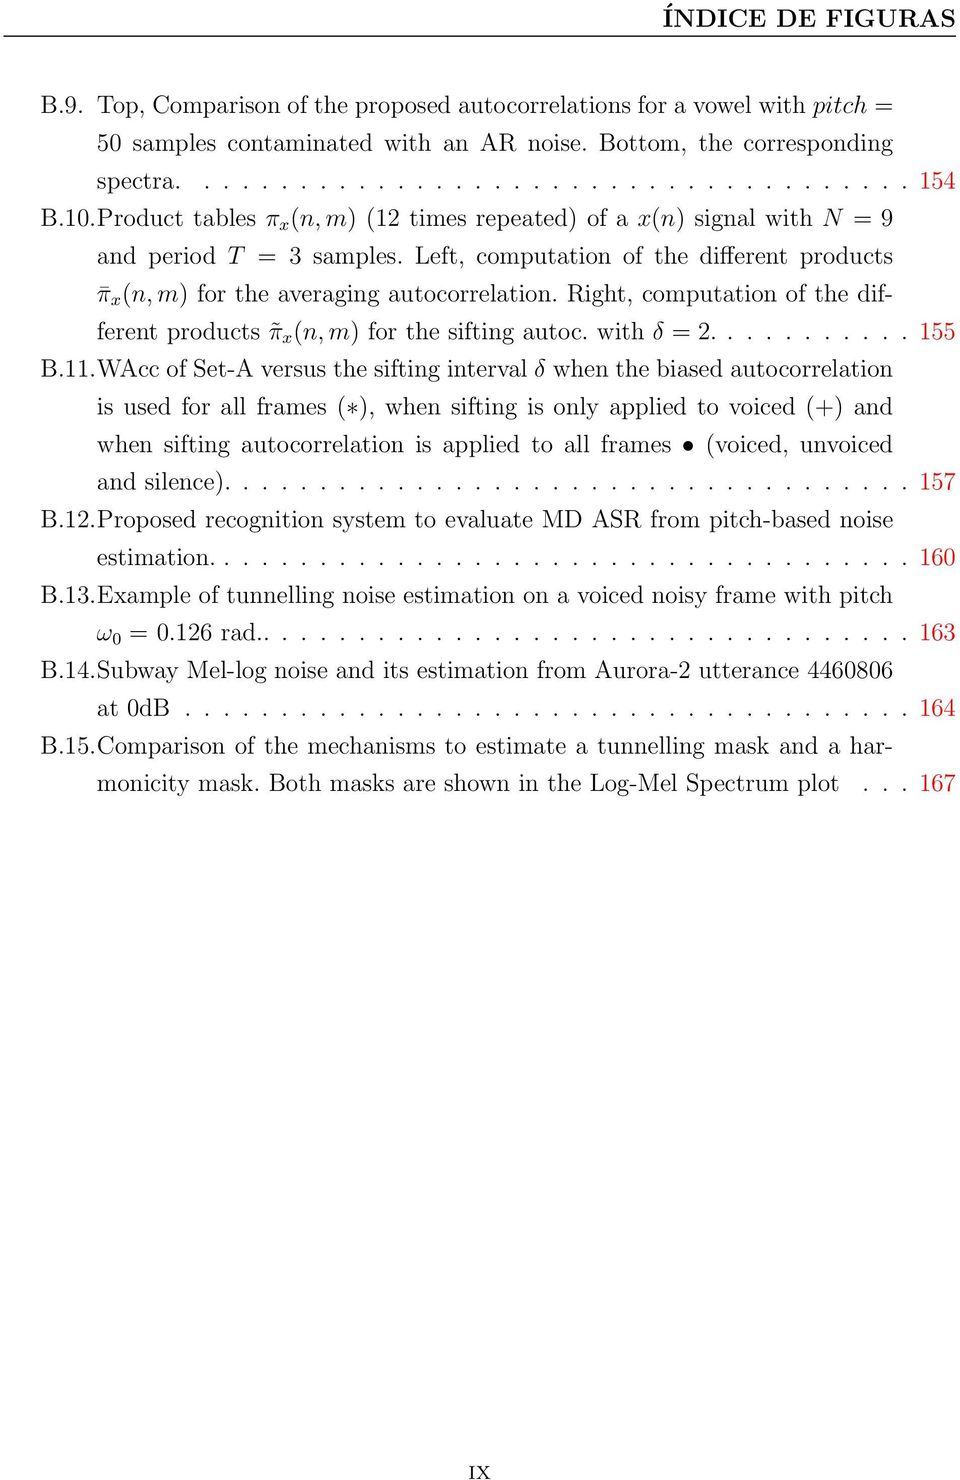 Right, computation of the different products π x (n, m) for the sifting autoc. with δ = 2........... 155 B.11.